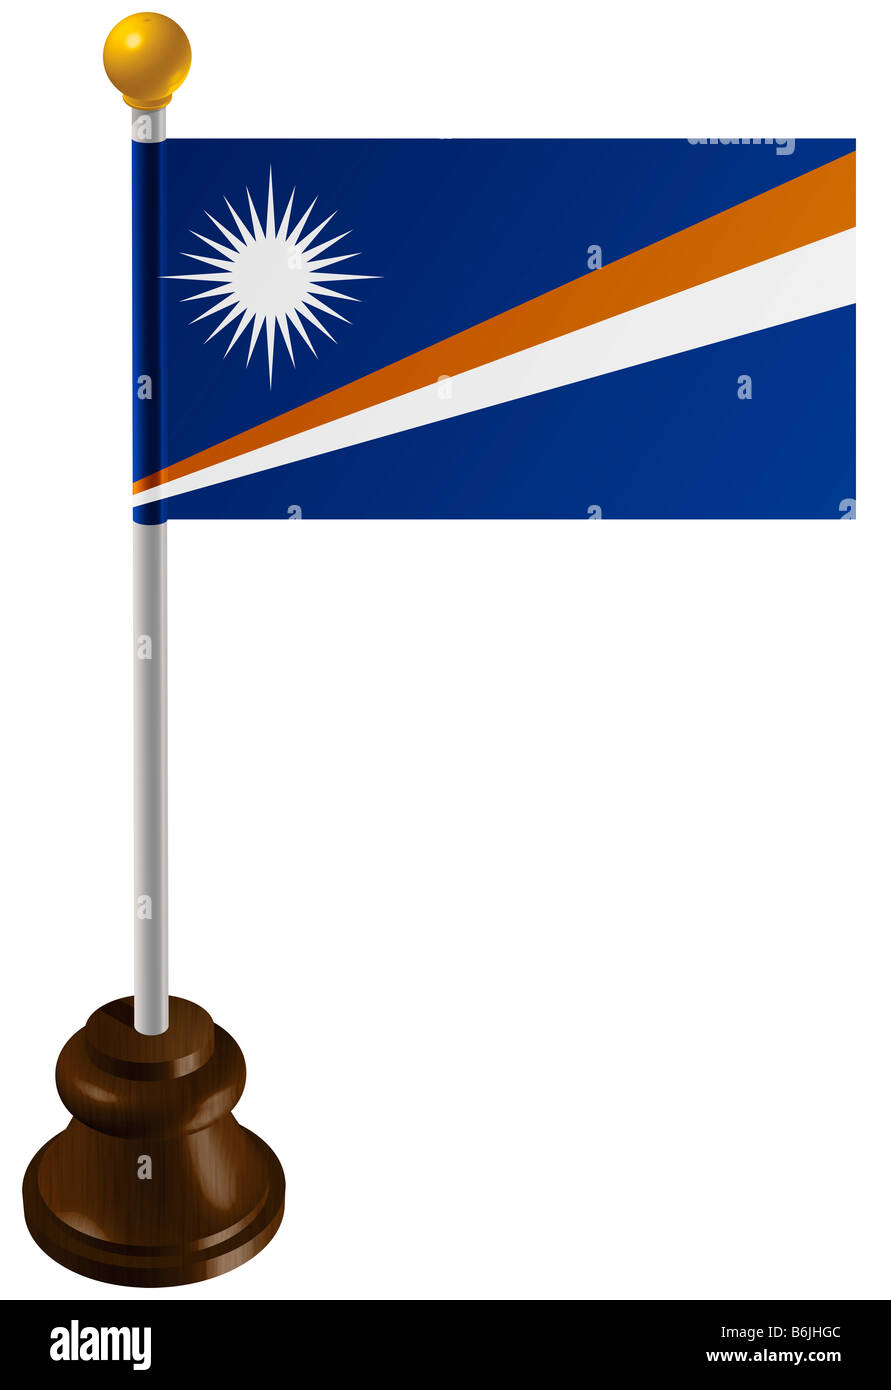 Marshall Islands flag as a marker - Stock Image